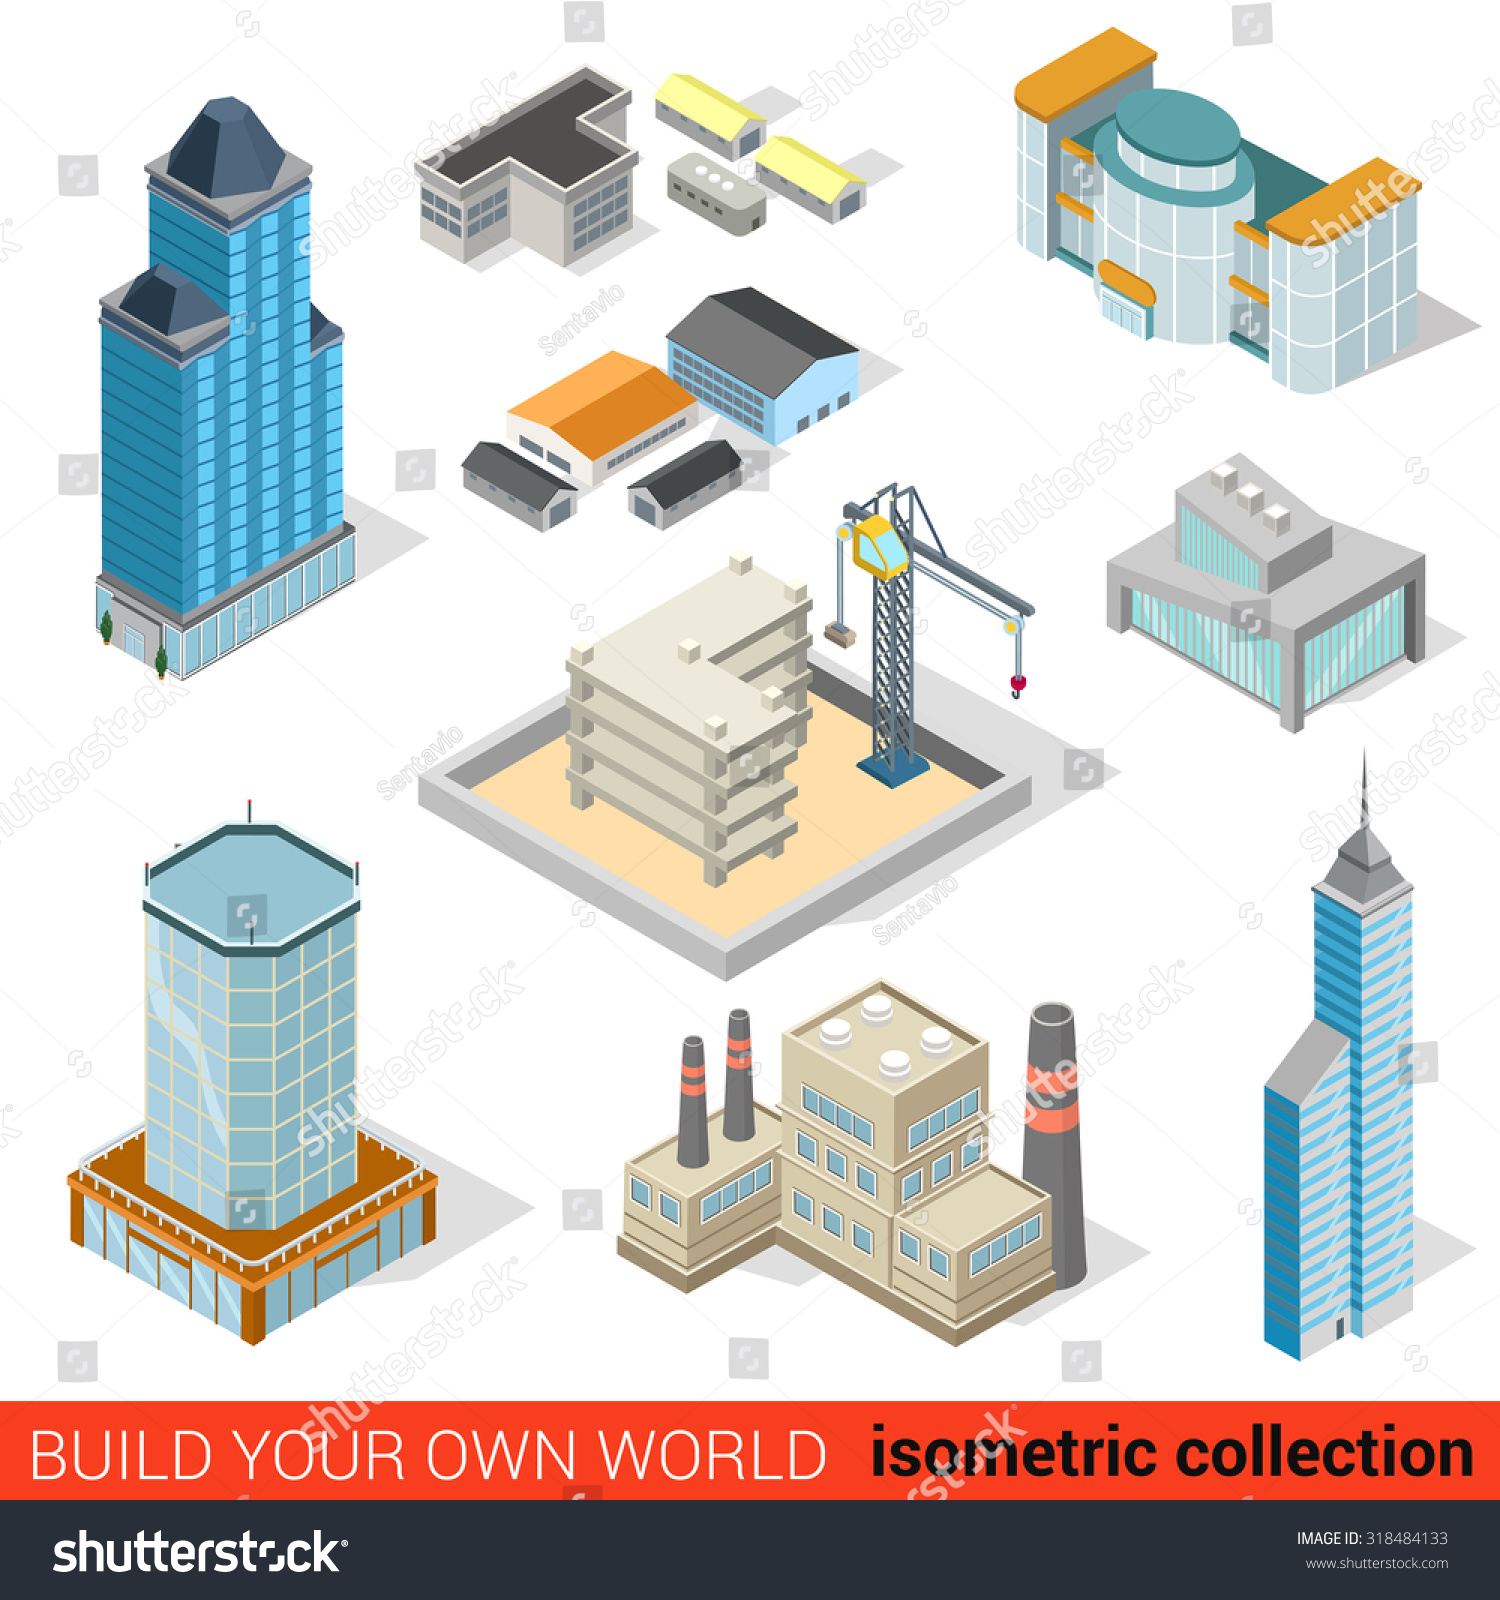 Flat 3d isometric city skyscraper building stock vector for Build your own 3d house